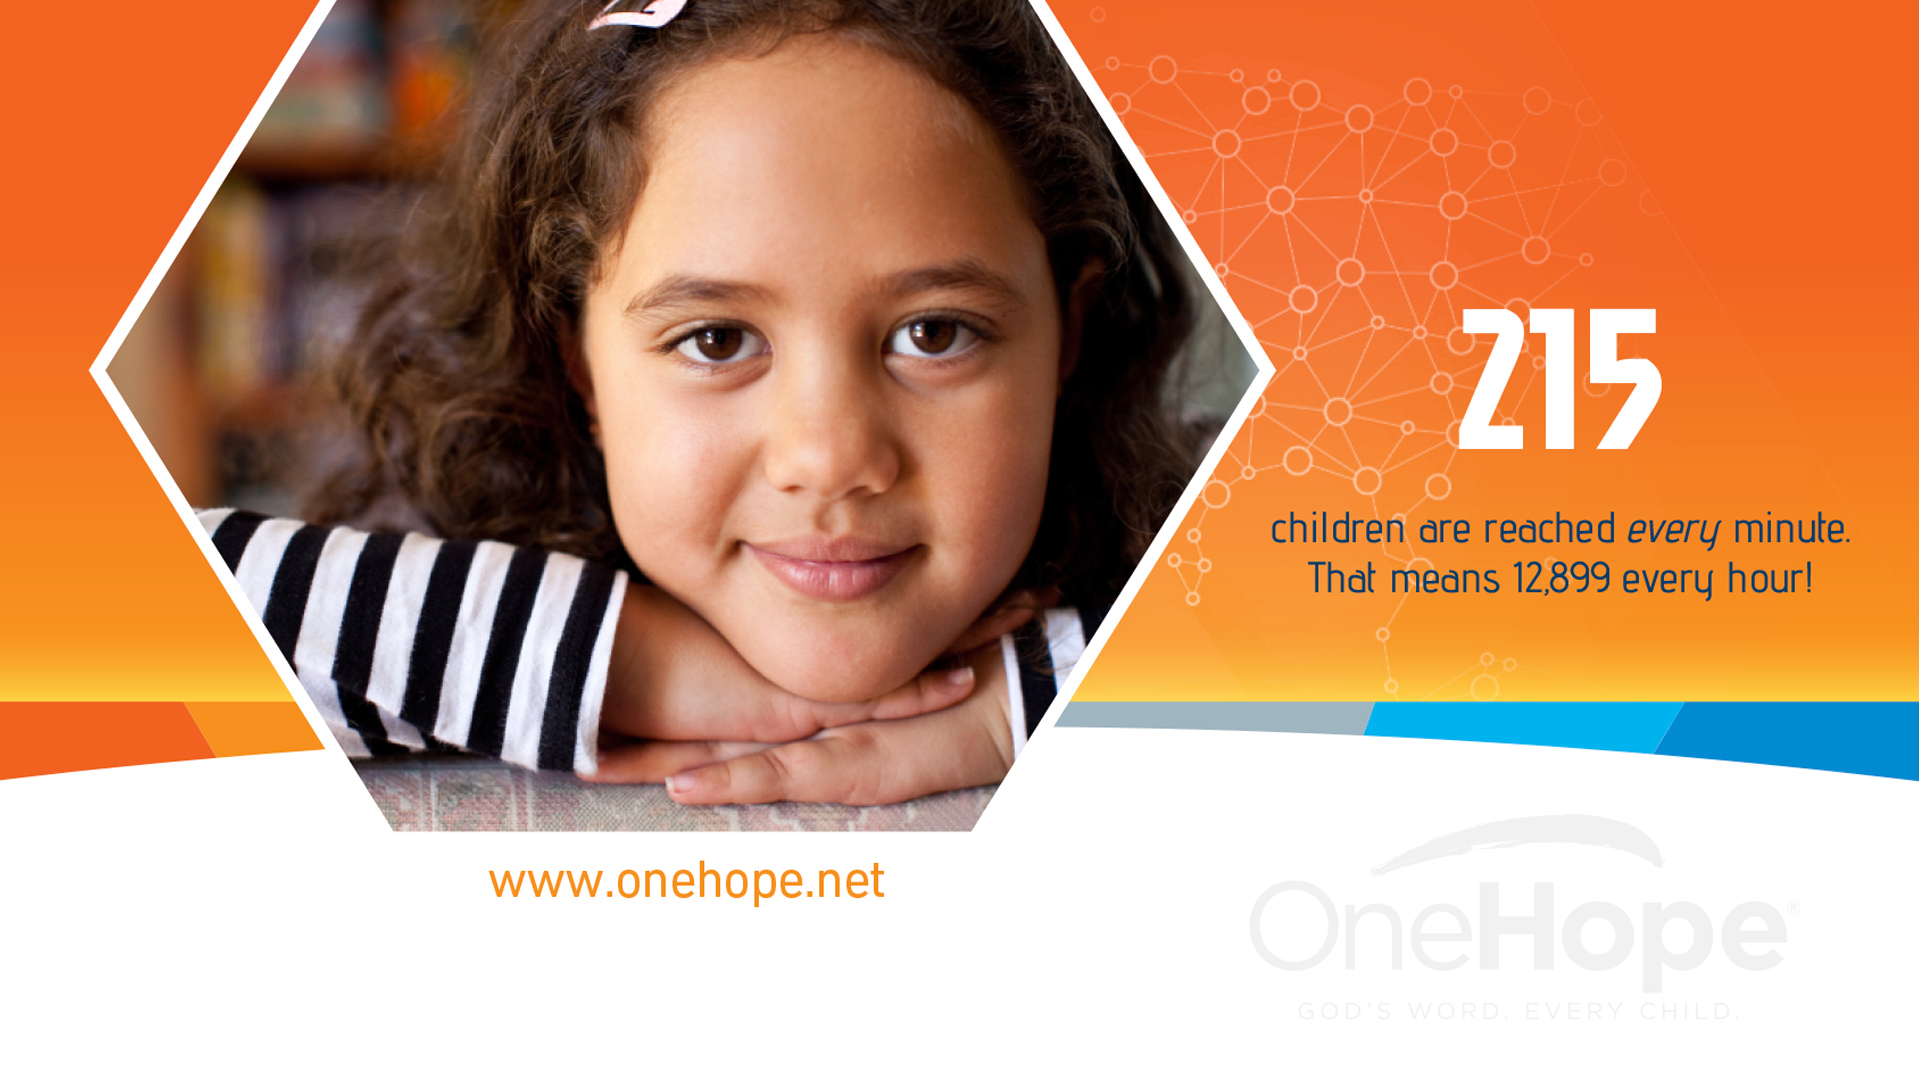 OneHope 215 Children Reached